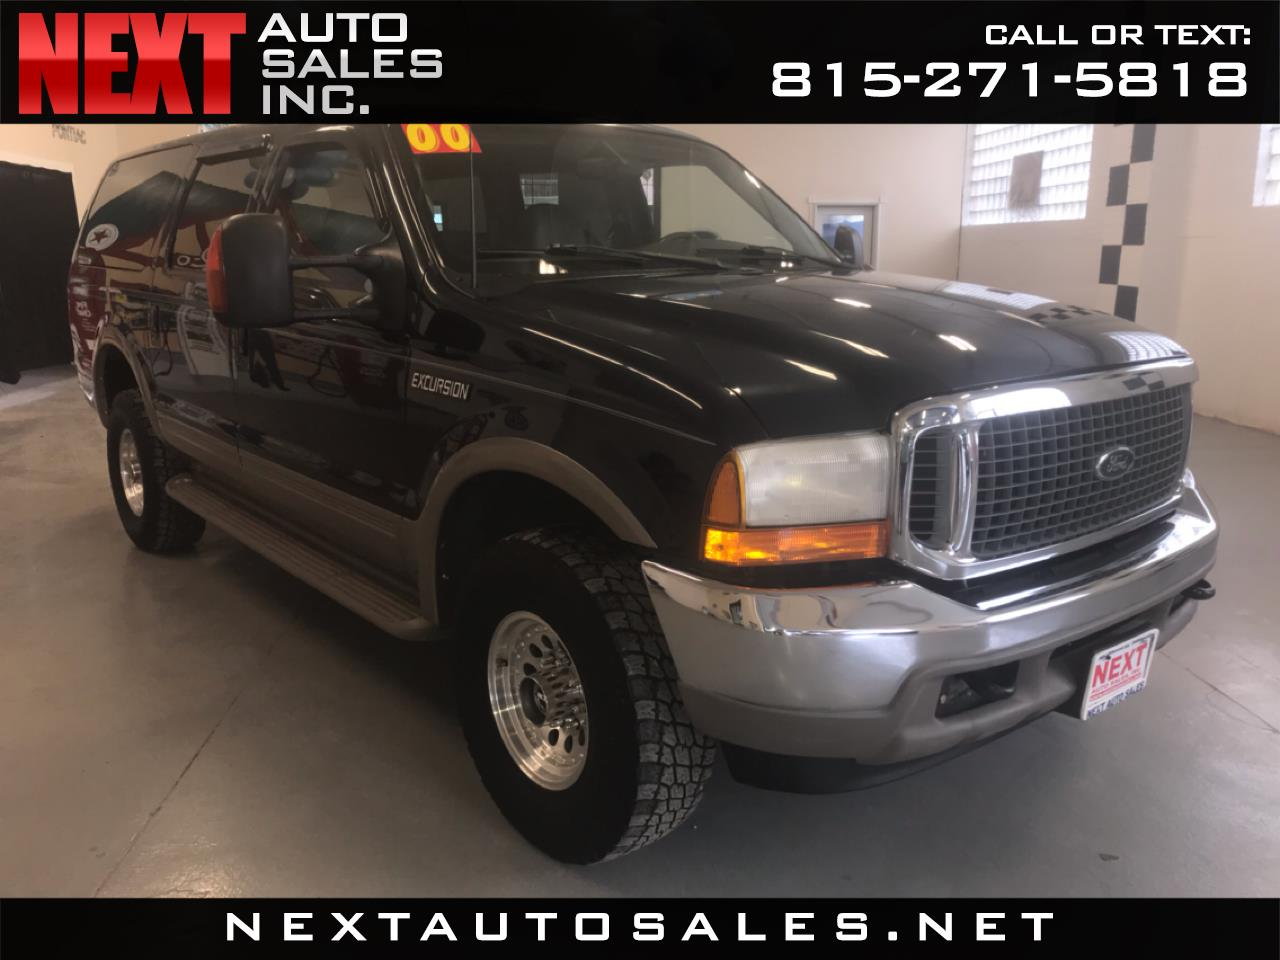 2000 Ford Excursion 137